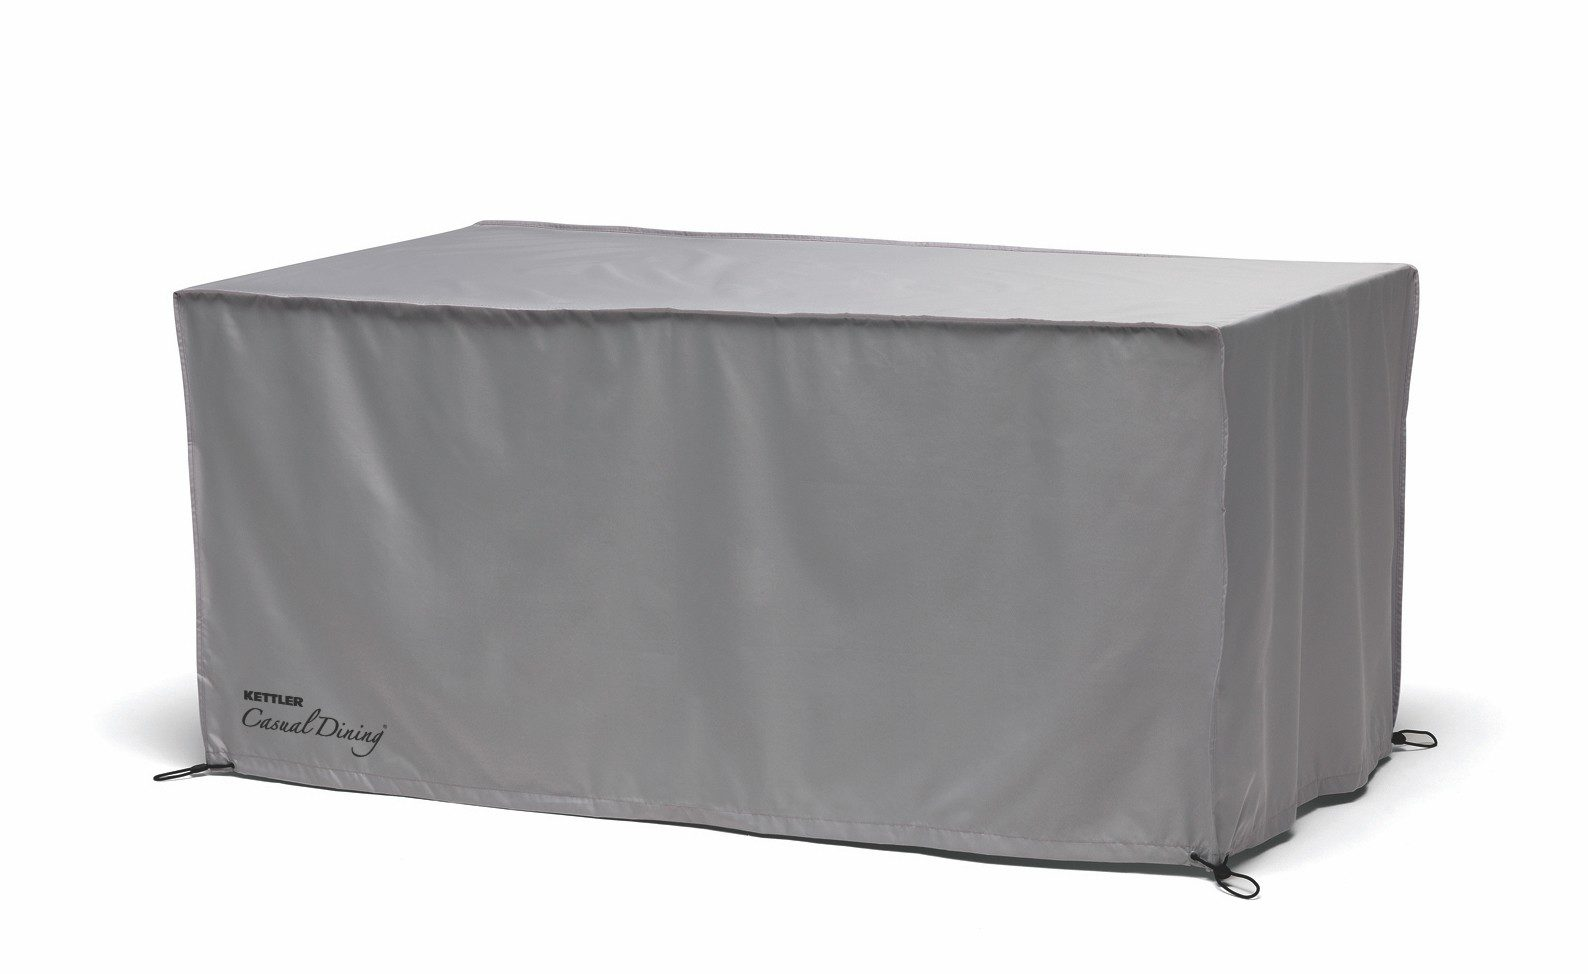 Kettler Protective Cover for Palma table